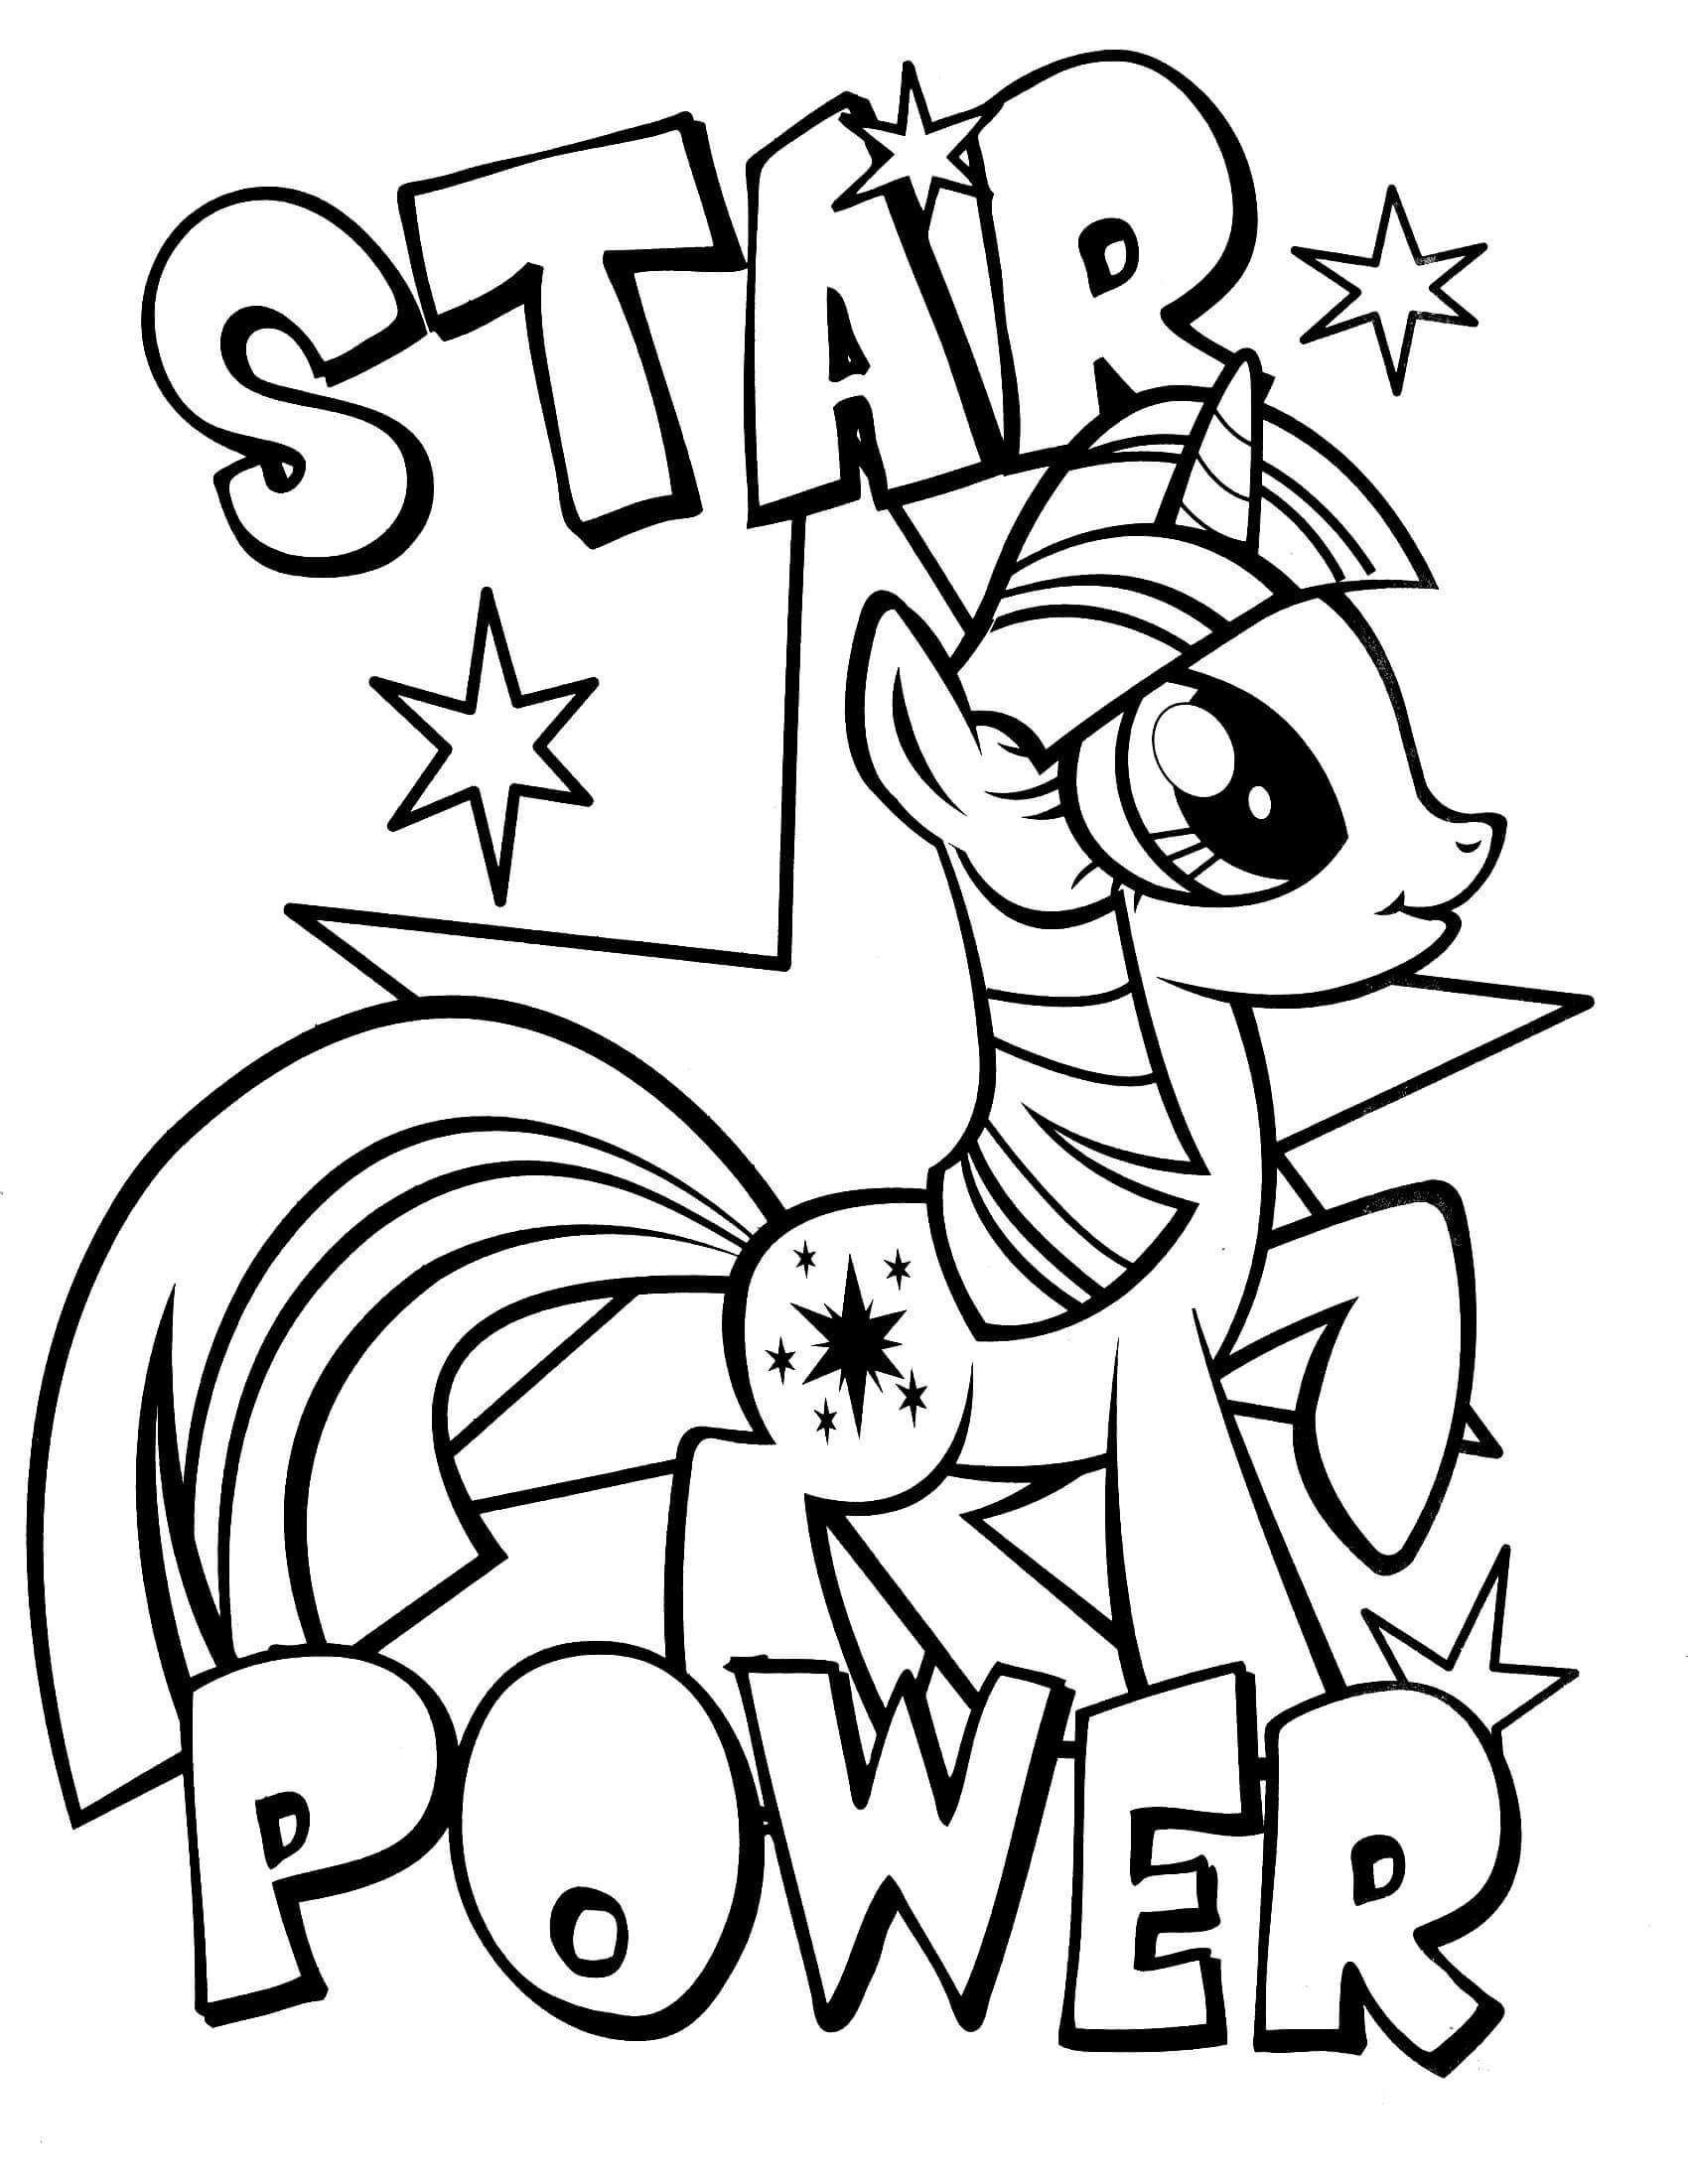 My Little Pony Equestria Girls Ausmalbilder Genial Mlp Coloring Pages Equestria Girls Printable My Little Pony Bild